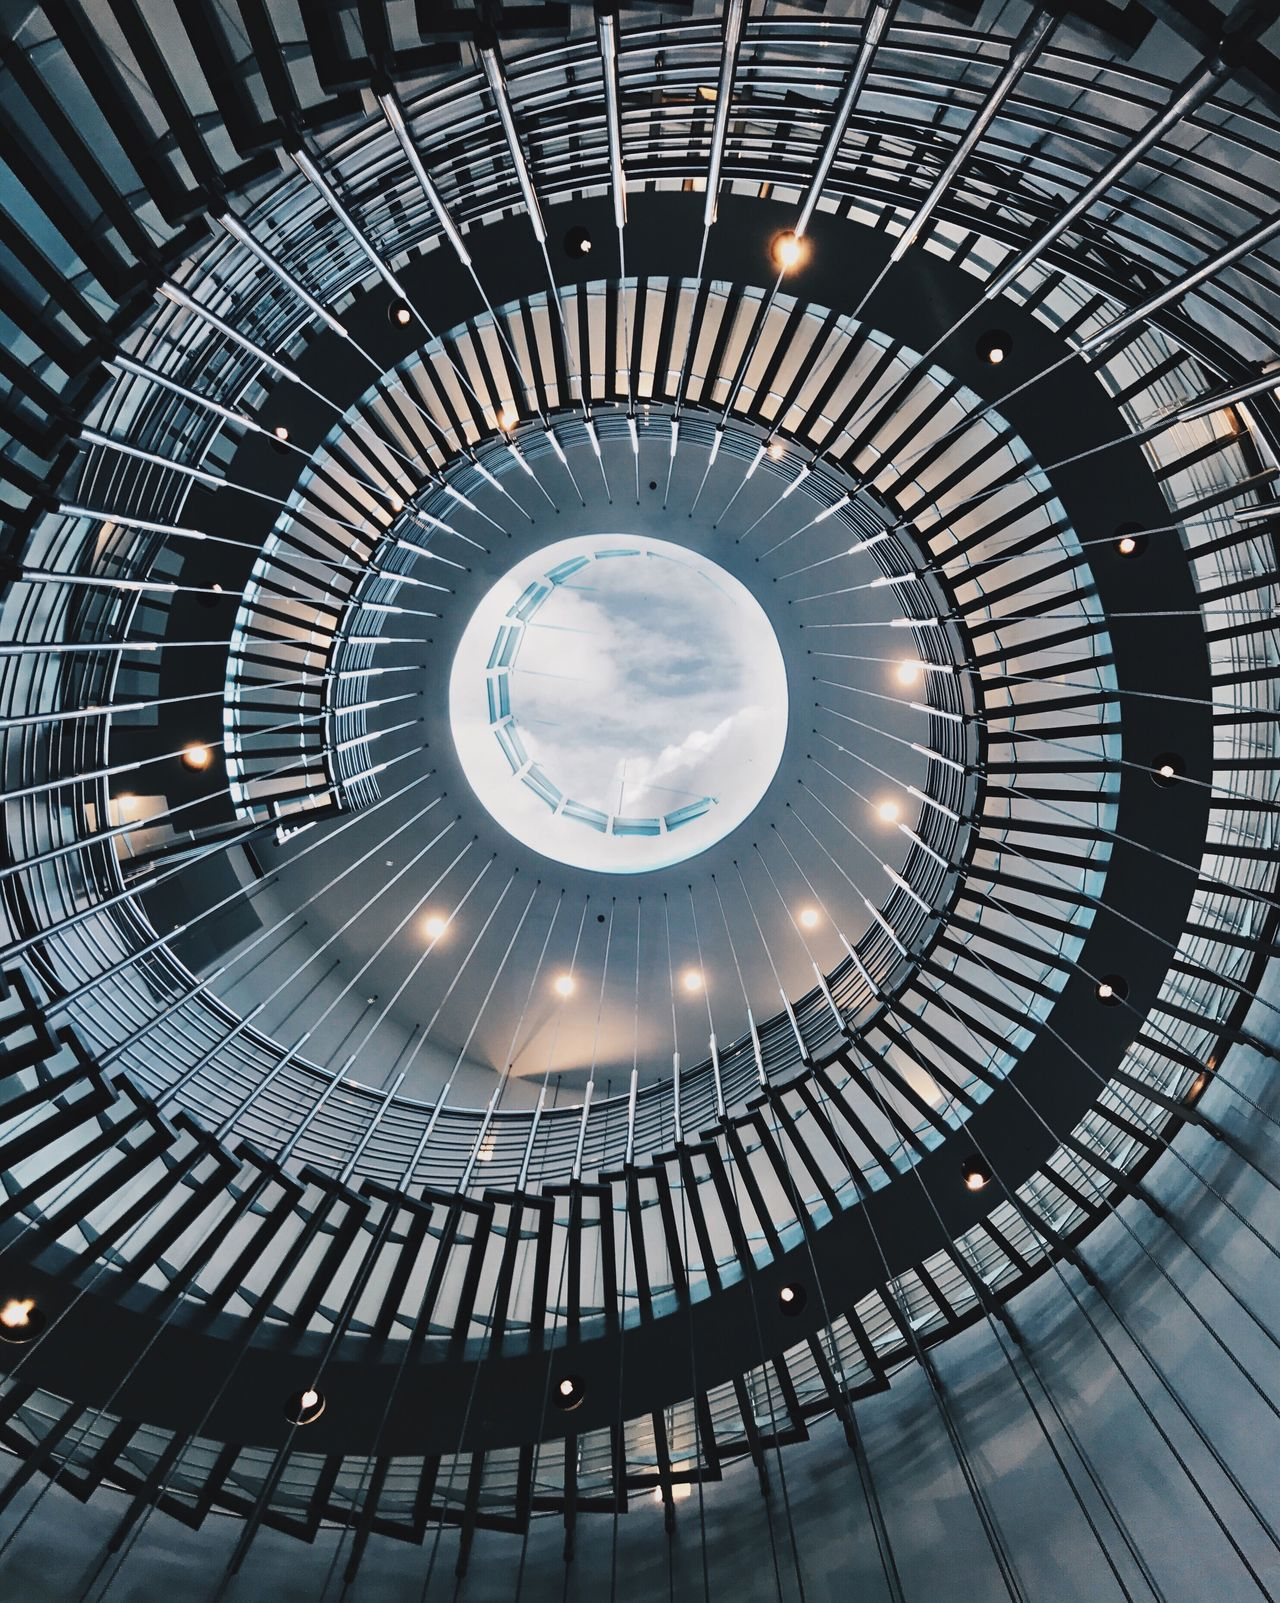 Architecture Steps And Staircases Built Structure Indoors  Spiral Spiral Staircase No People Illuminated Low Angle View Concentric Day EyeEm Selects Shotoniphone7plus The Week On EyeEm